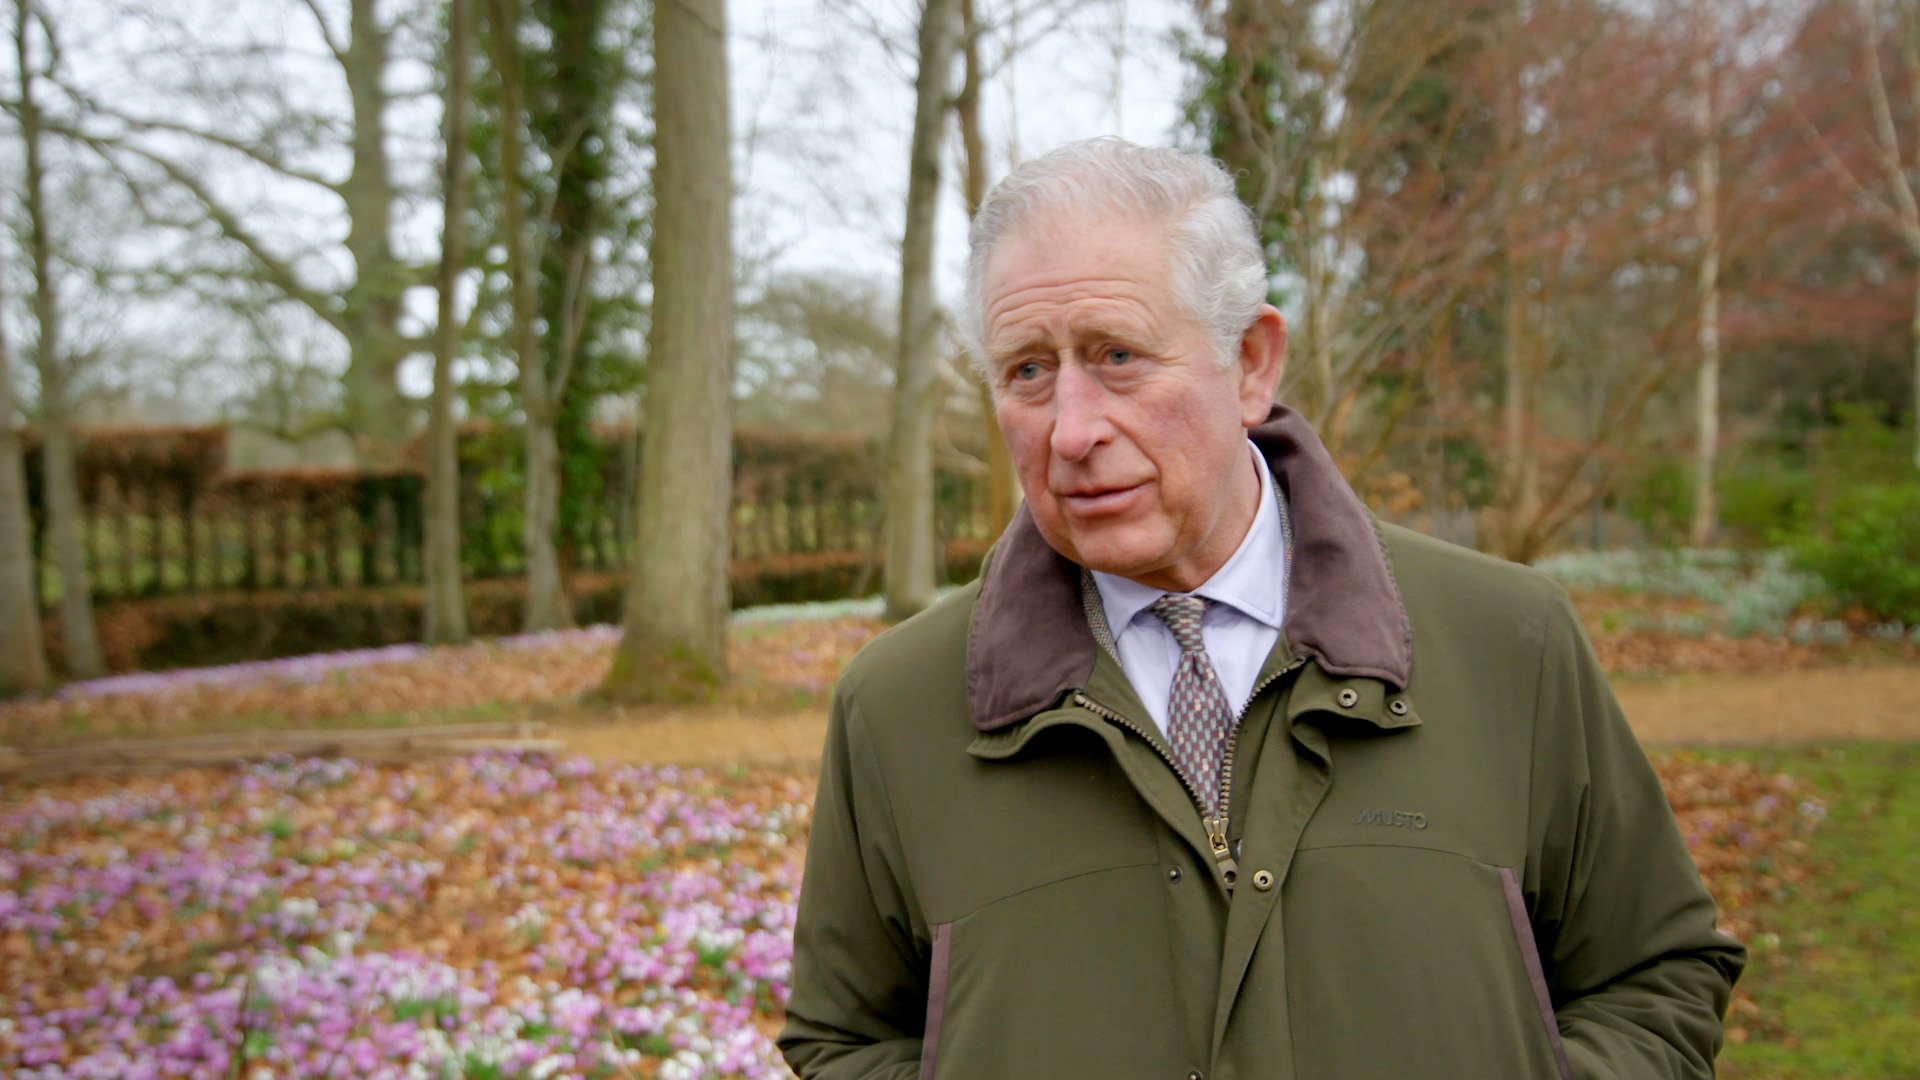 The Prince of Wales interviewed in the Duchy of Cornwall documentary